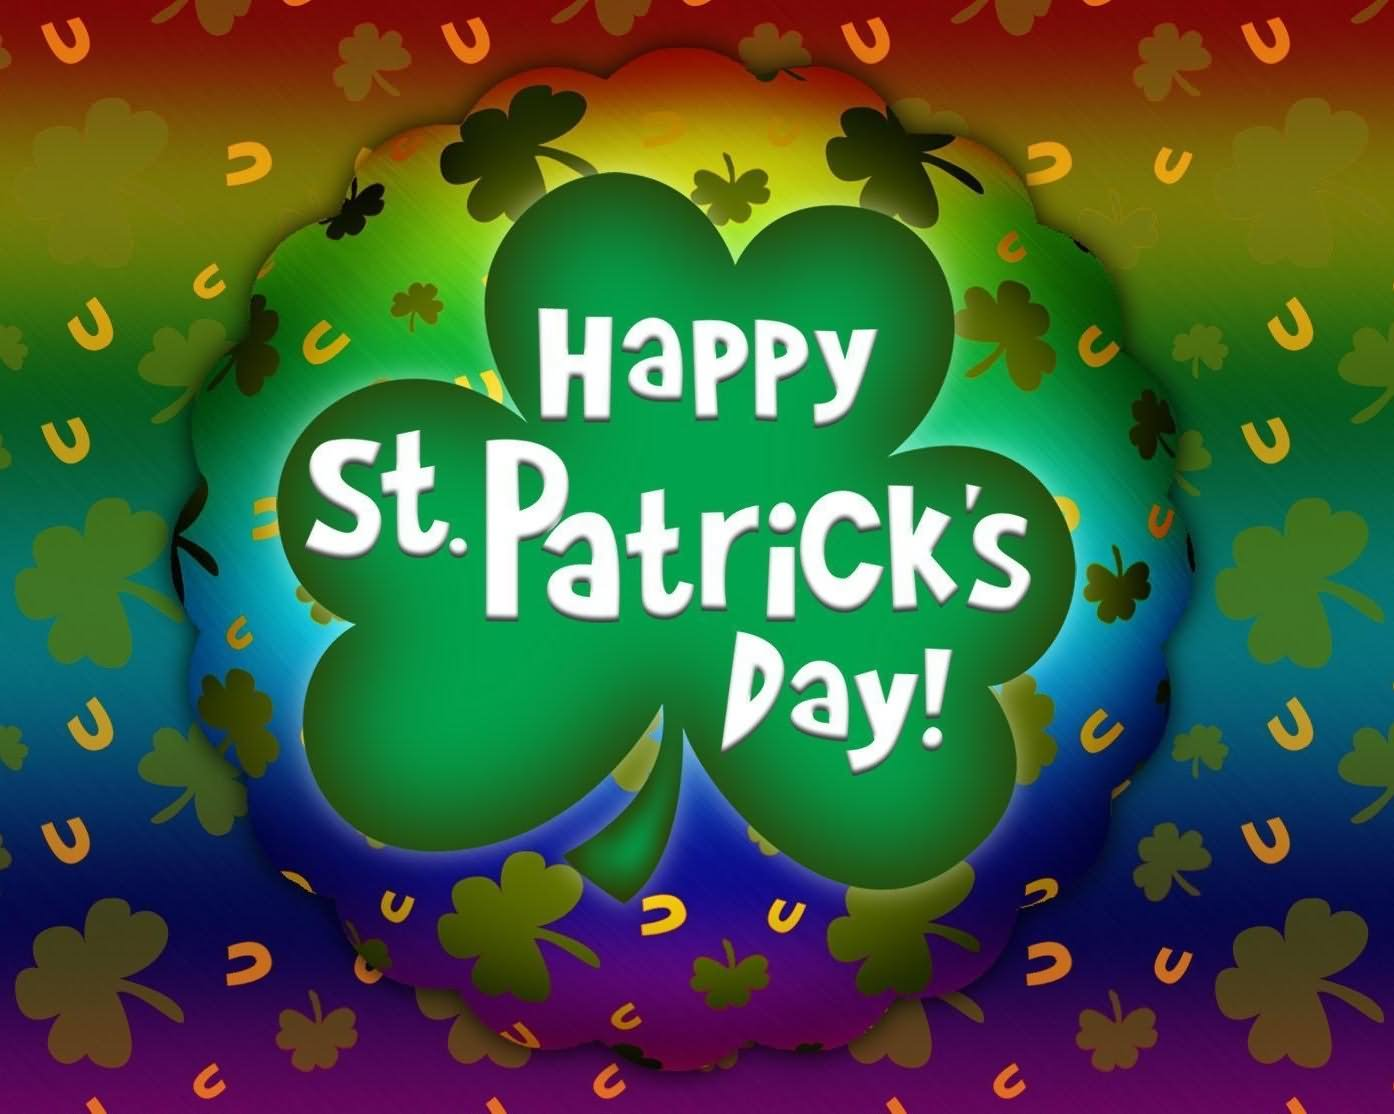 25 Wonderful Saint Patrick's Day Wishes Pictures